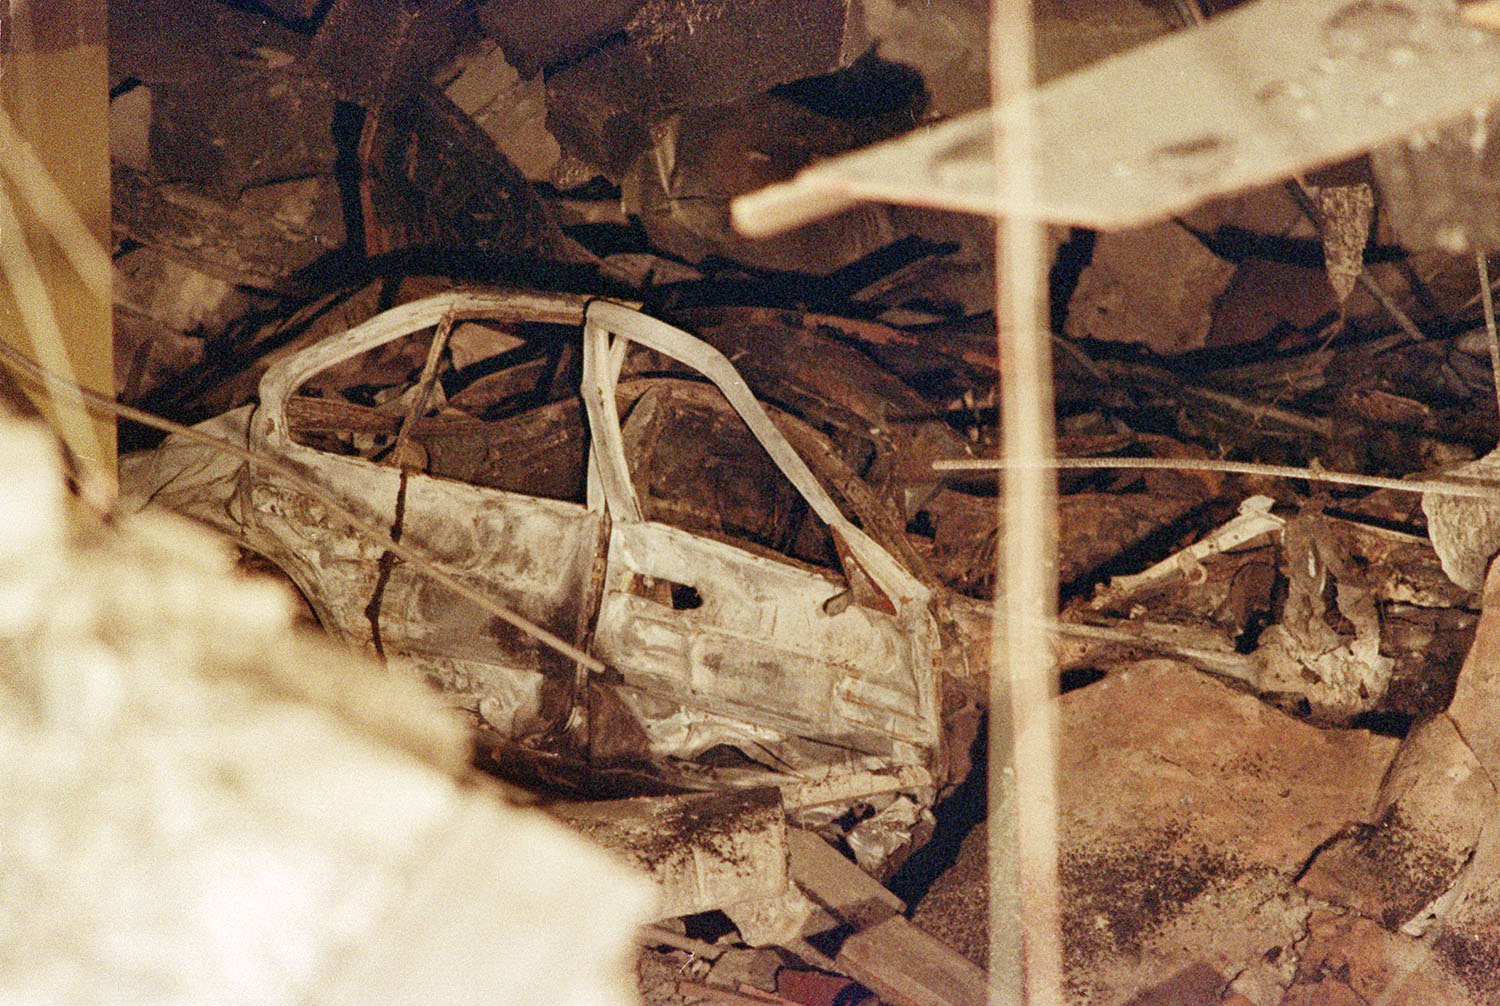 <div class='meta'><div class='origin-logo' data-origin='AP'></div><span class='caption-text' data-credit='AP Photo/Ron Frehm'>A destroyed car lies underneath a section of rubble in the sub-basement of New York's World Trade Center, seen Feb. 28, 1993.</span></div>